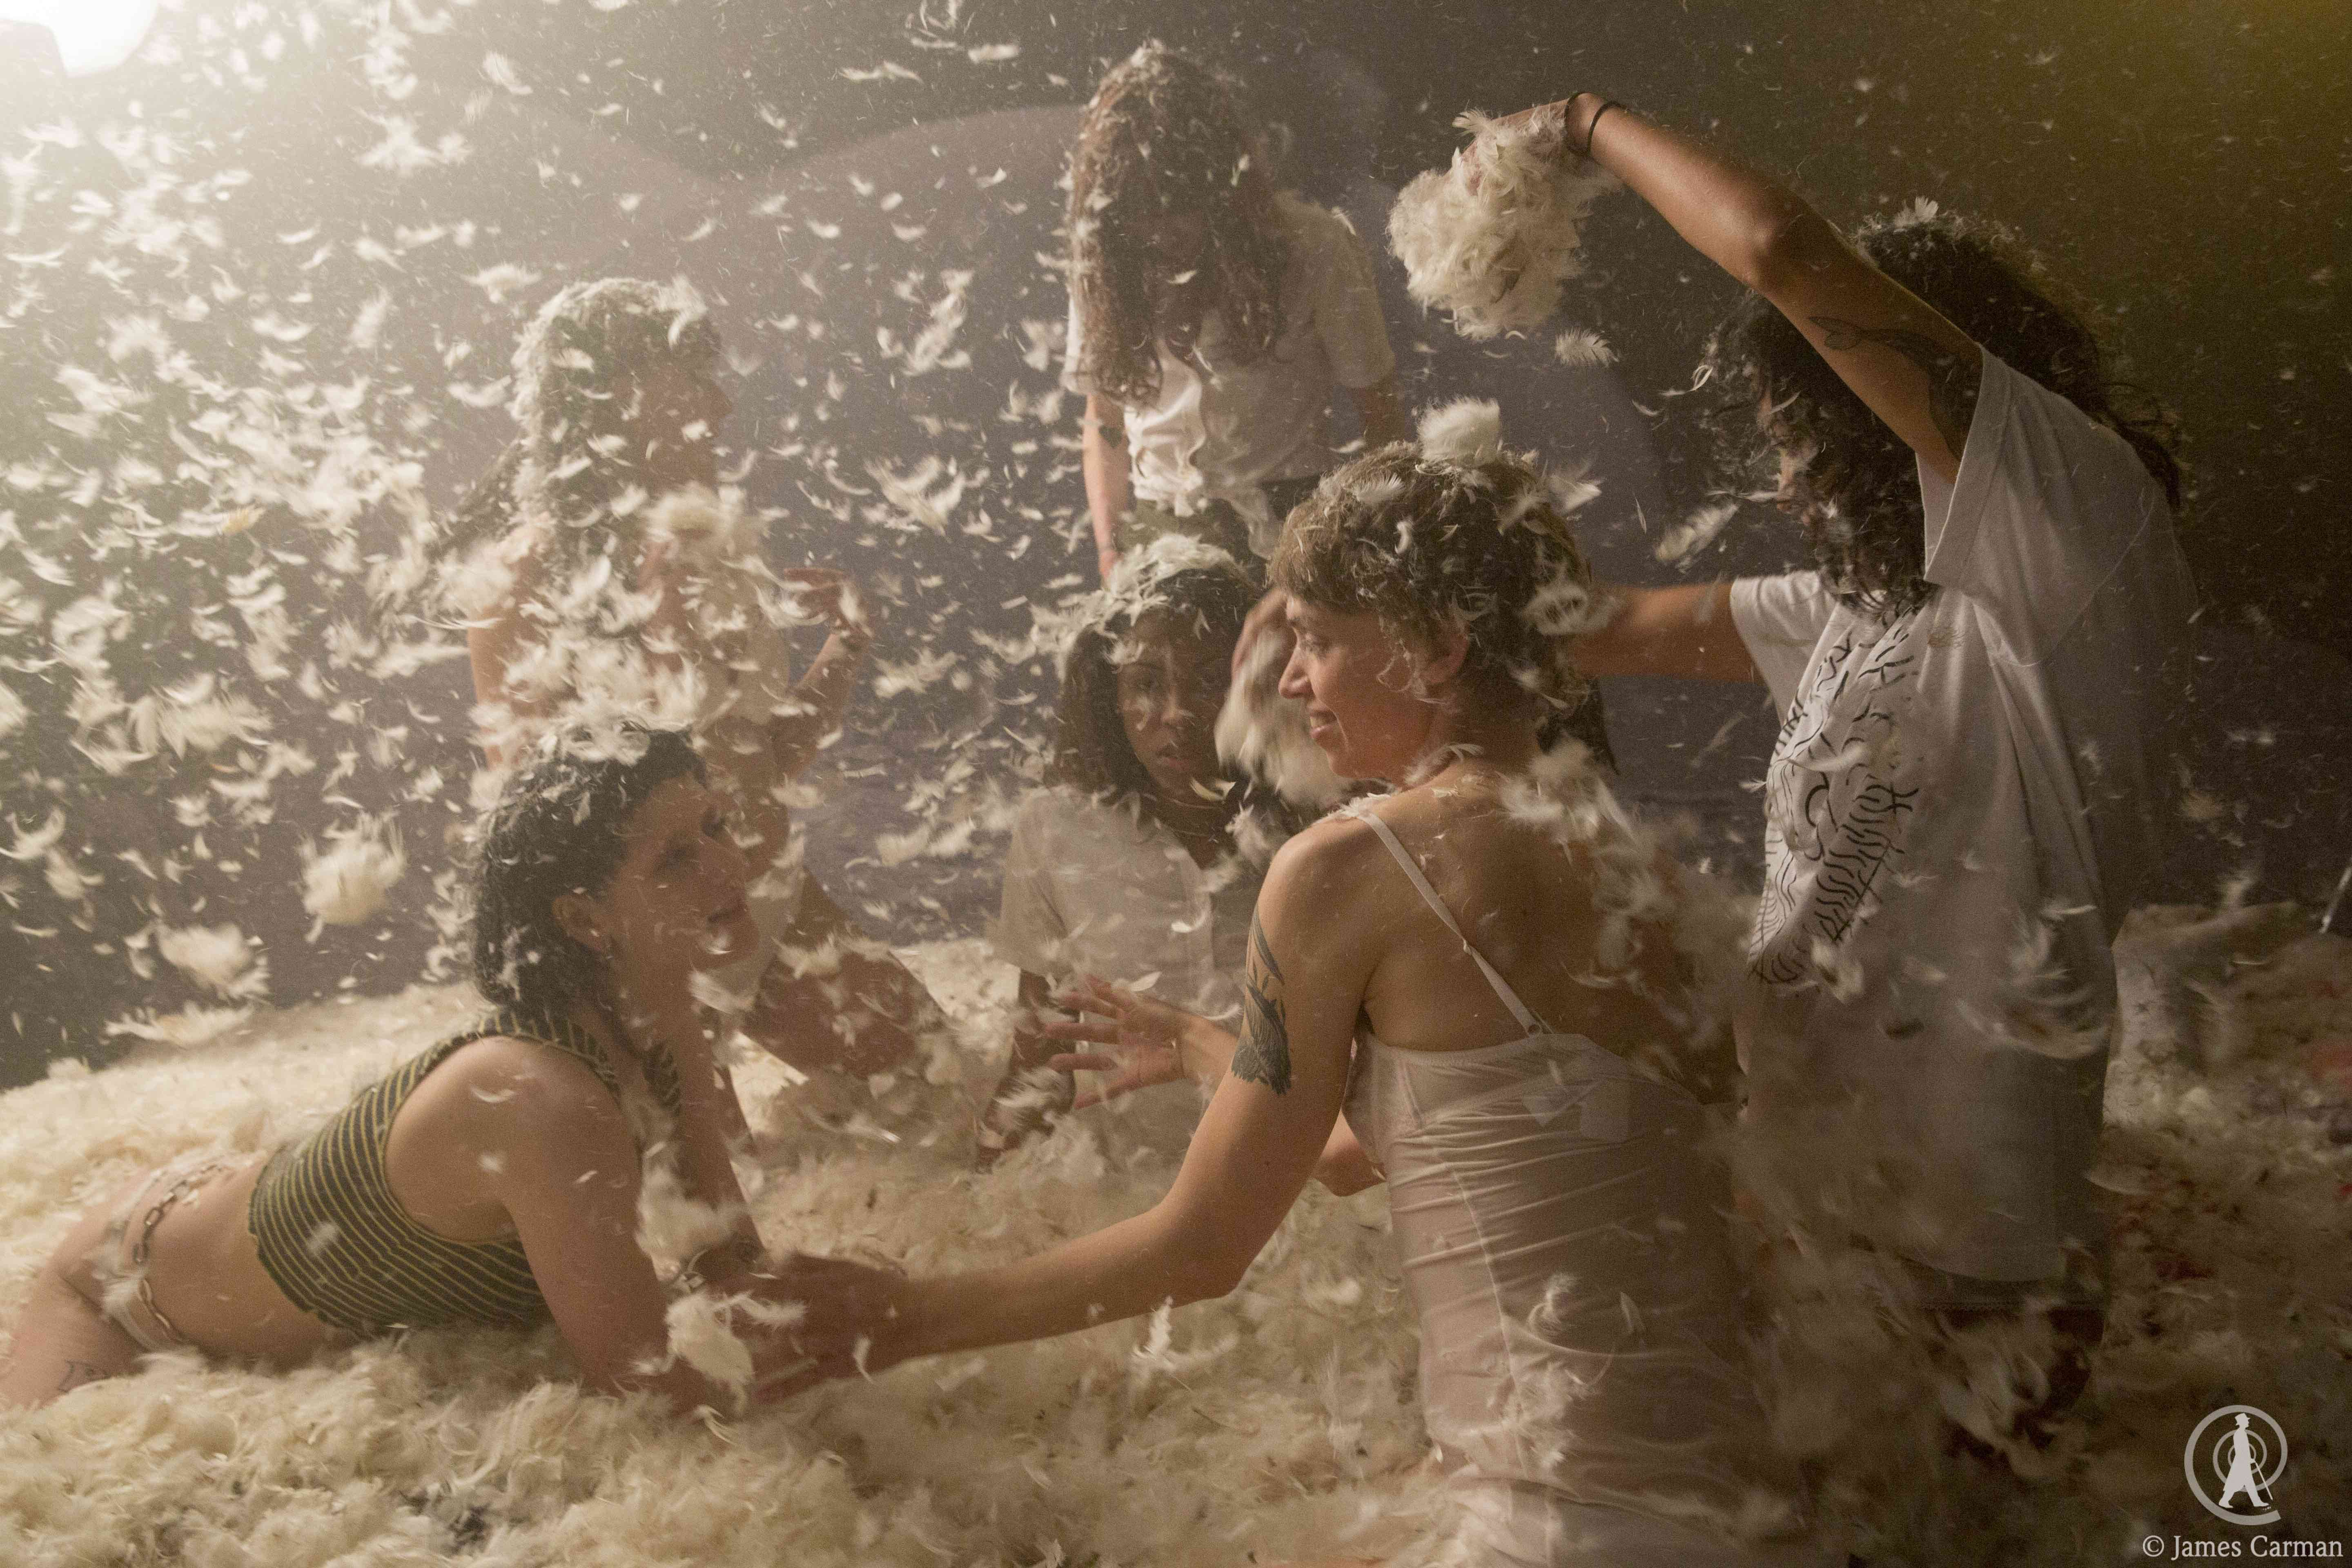 Pillow Fight! A scene from the set of Bruce LaBruce's, The Misandrists.